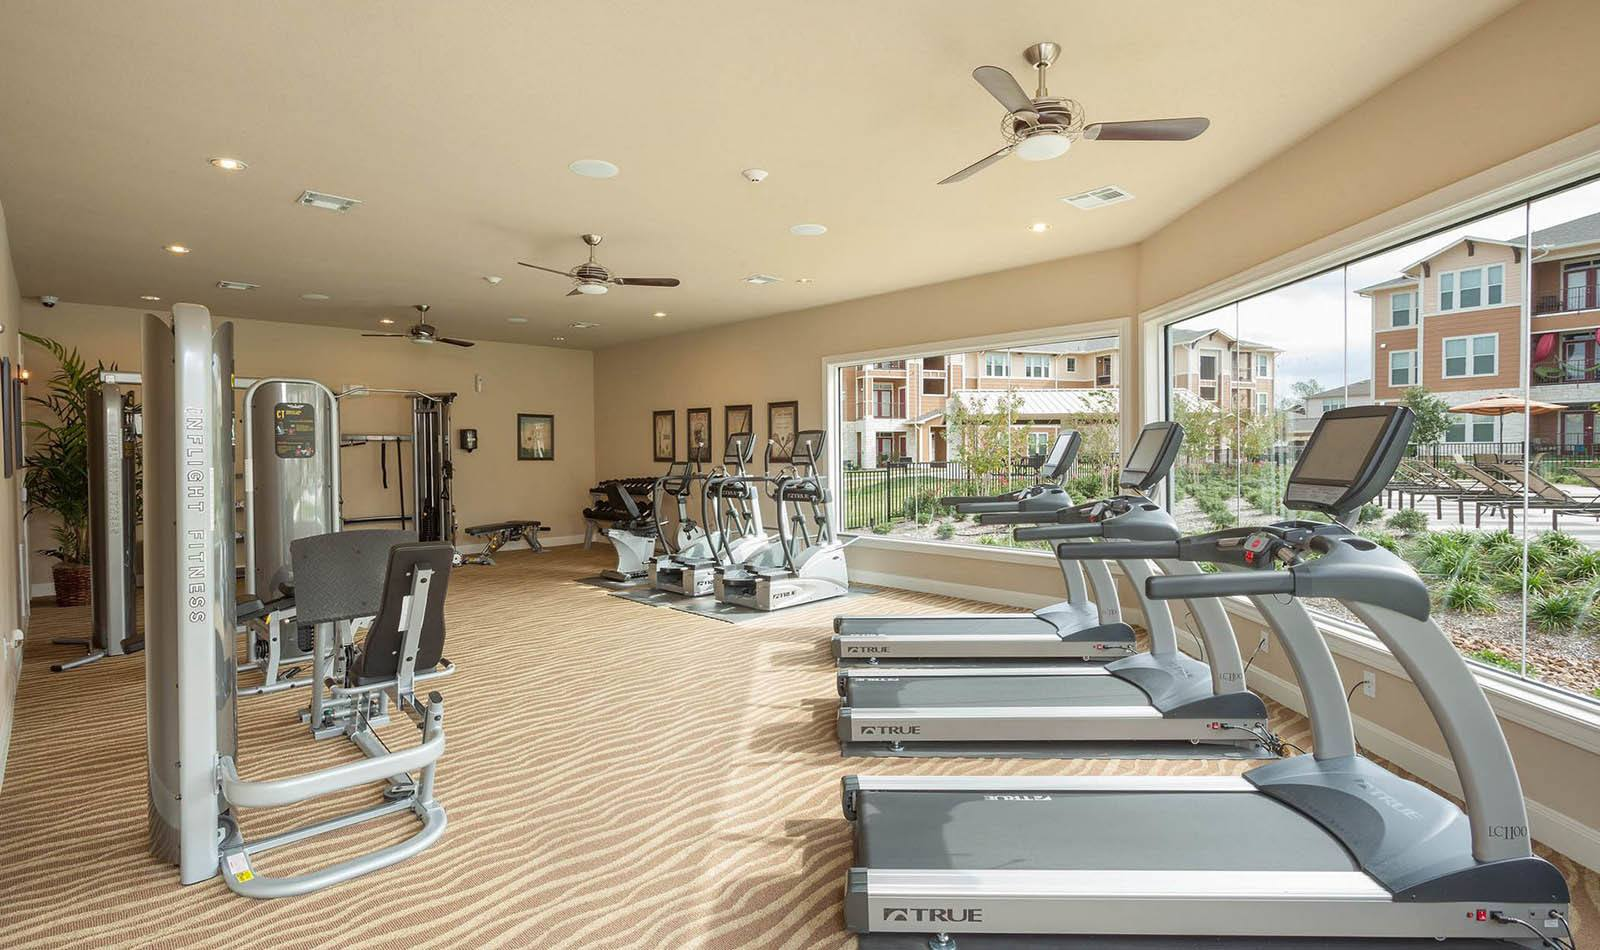 Fitness center at Parkway Grande in San Marcos, TX